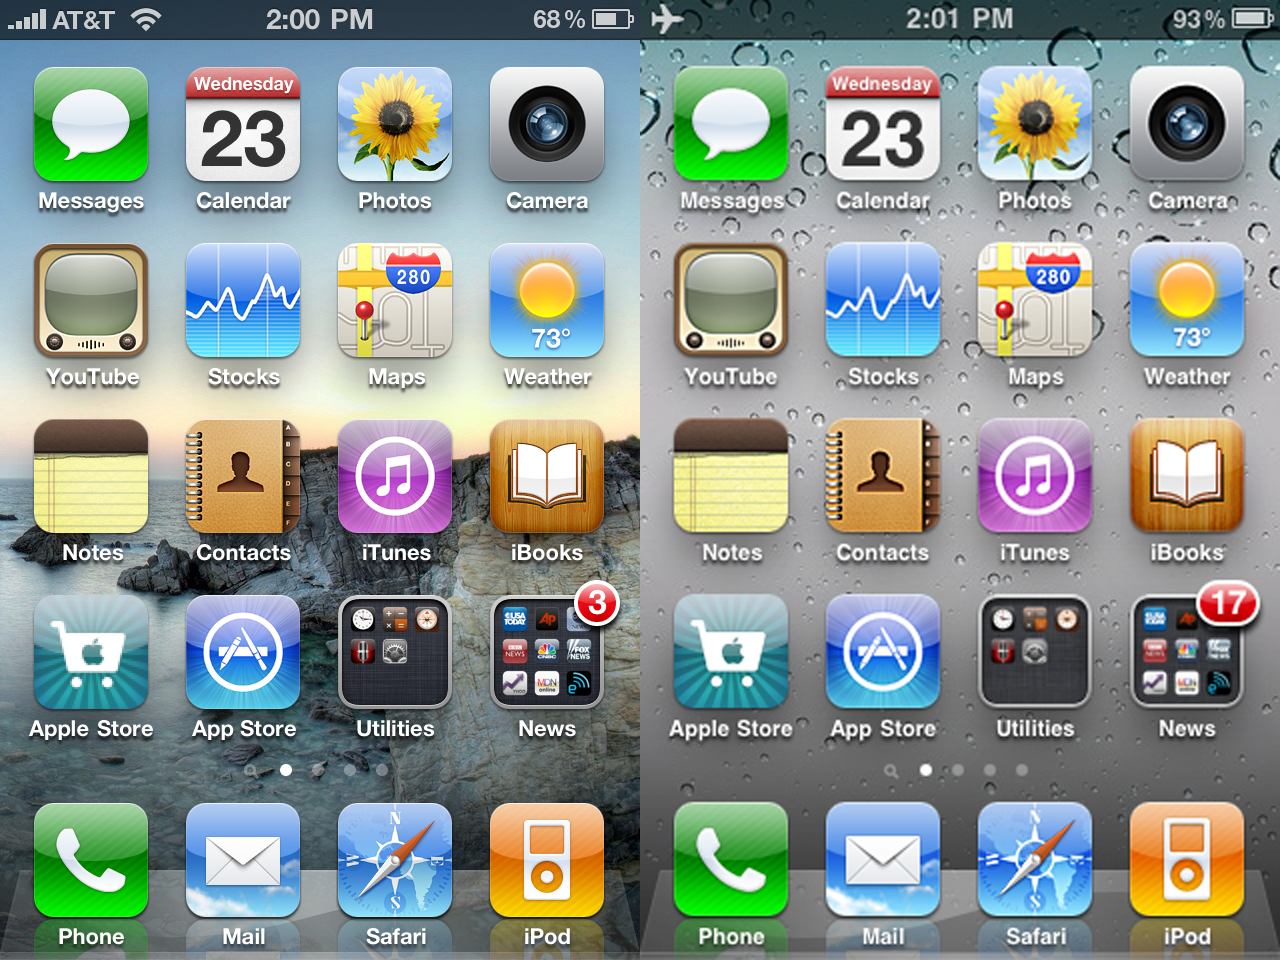 Comparing iphone 4 and iphone 3gs screens saudimac for Wallpaper for iphone 3gs home screen